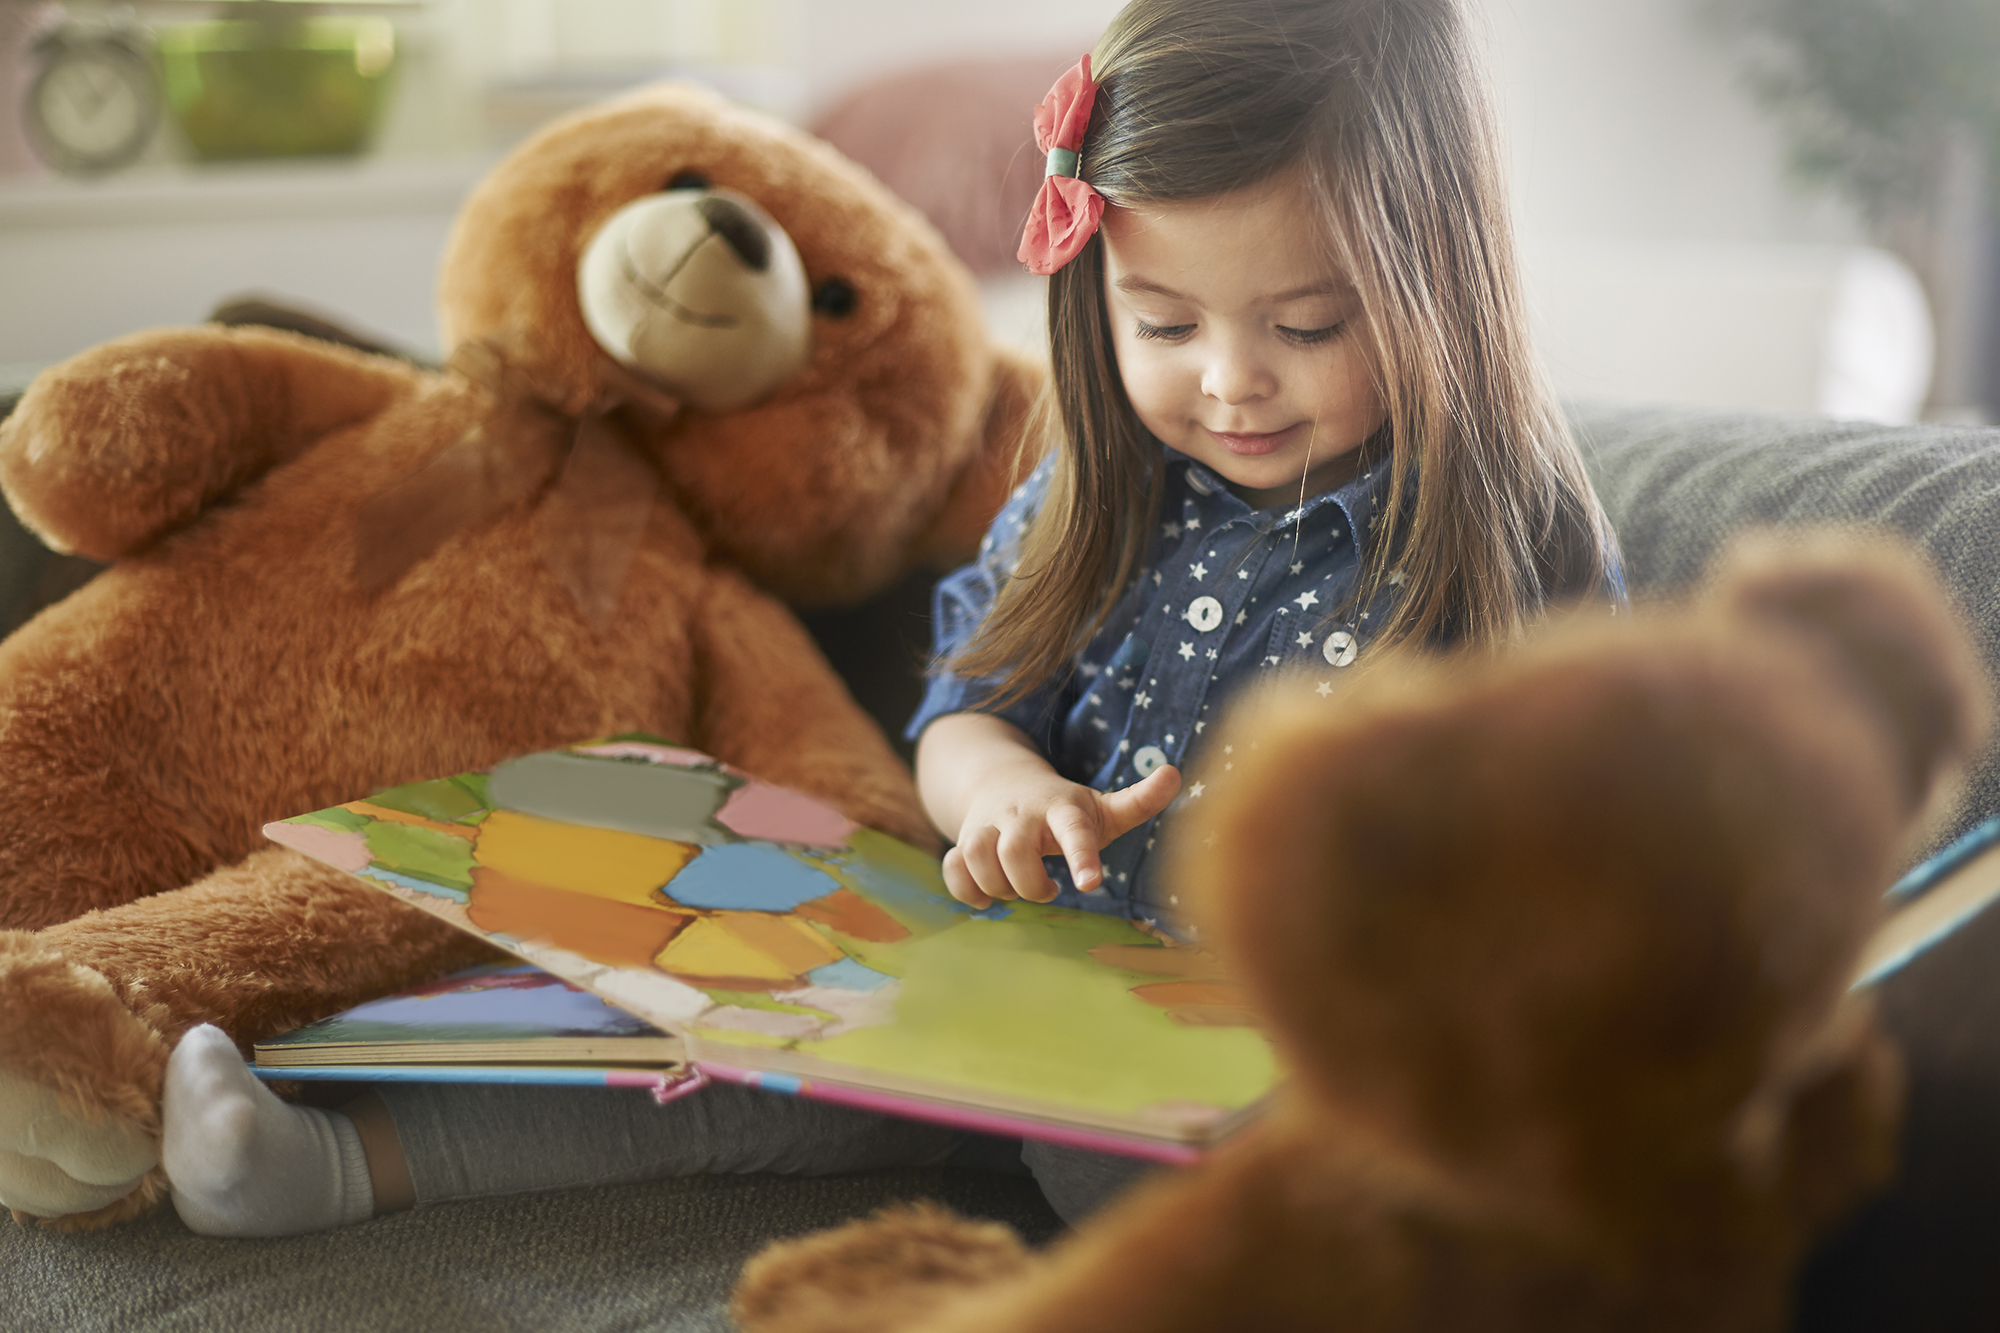 Toddler girl reading a book on a sofa surrounded by teddy bear stuffed animal